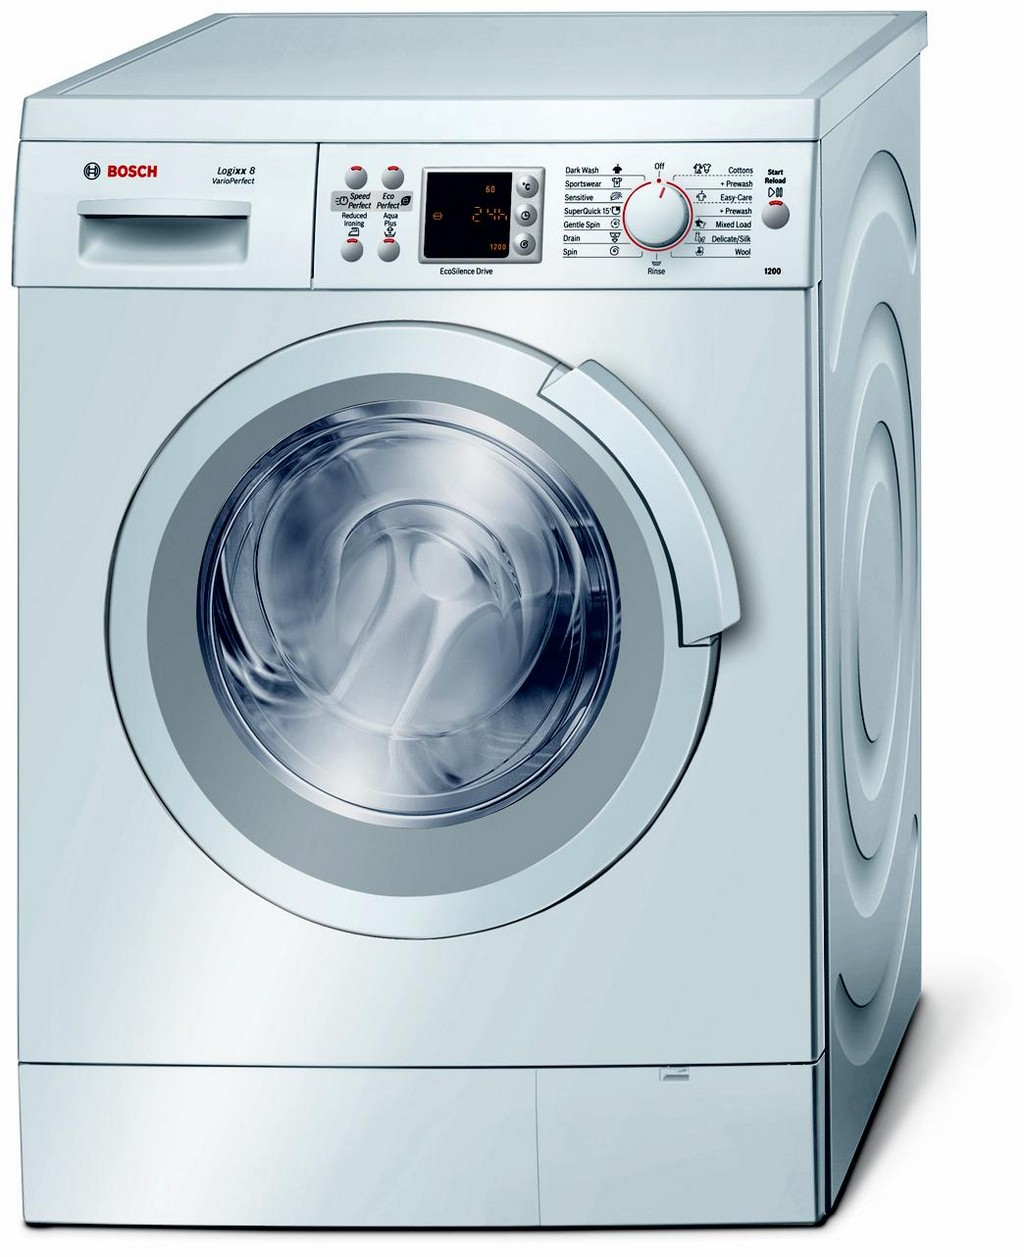 washing machine sale, haier washing machine, kenmore washing machine